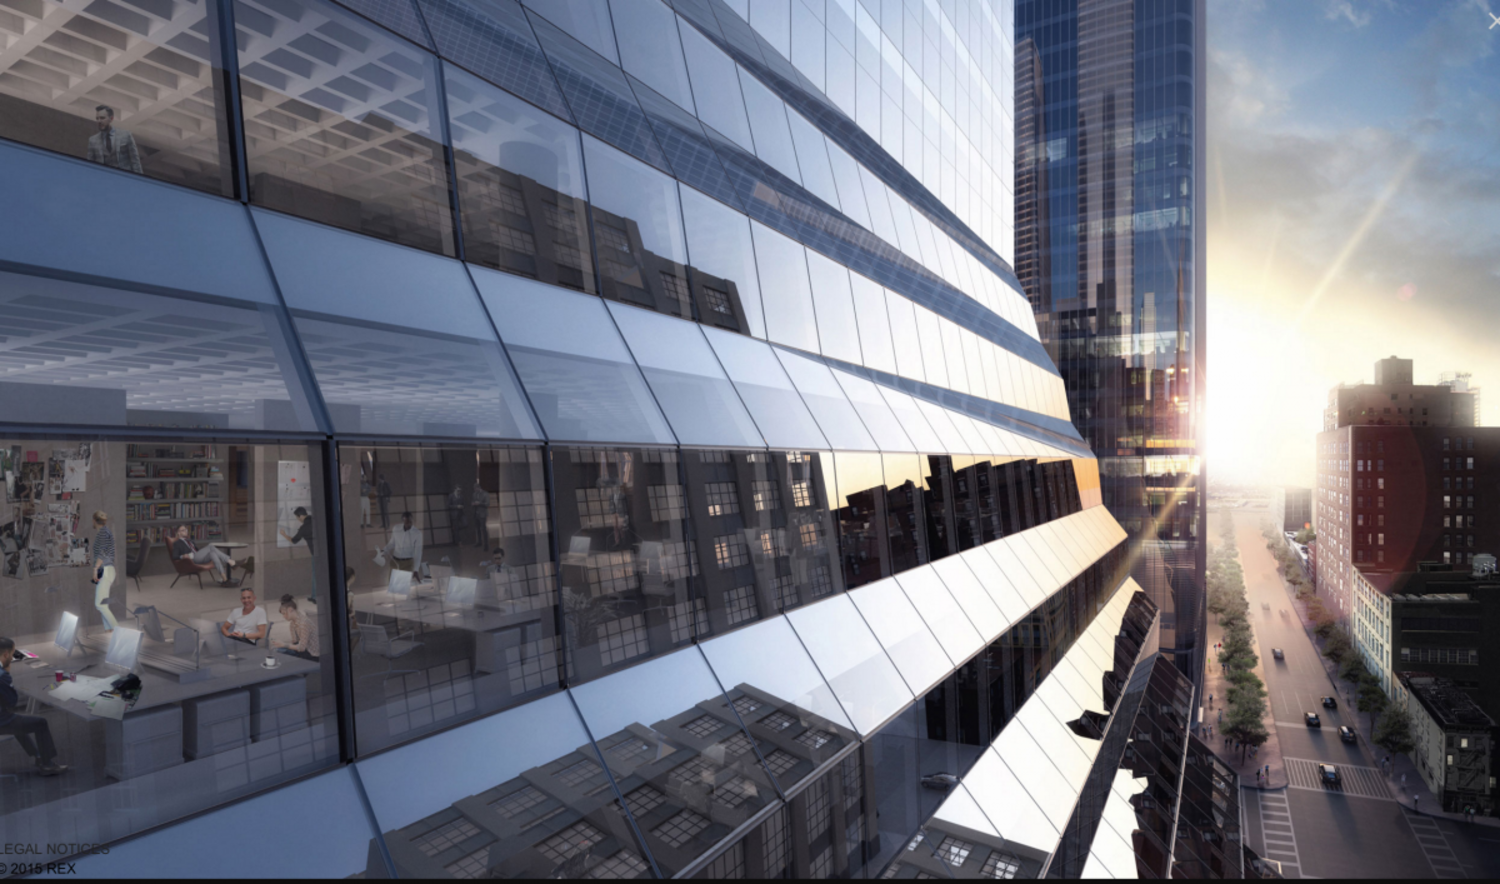 """The massive undertaking also involves the repositioning, re-cladding, and interior revamp of a 16-story Brutalist landmark at 450 West 33rd Street. Originally built in 1969, the 1.7-million-square-foot structure—soon to be called """"Five Manhattan West""""—will stand fully clad in a new $200 million glass exterior designed by New York-based REX Architecture by year's end."""